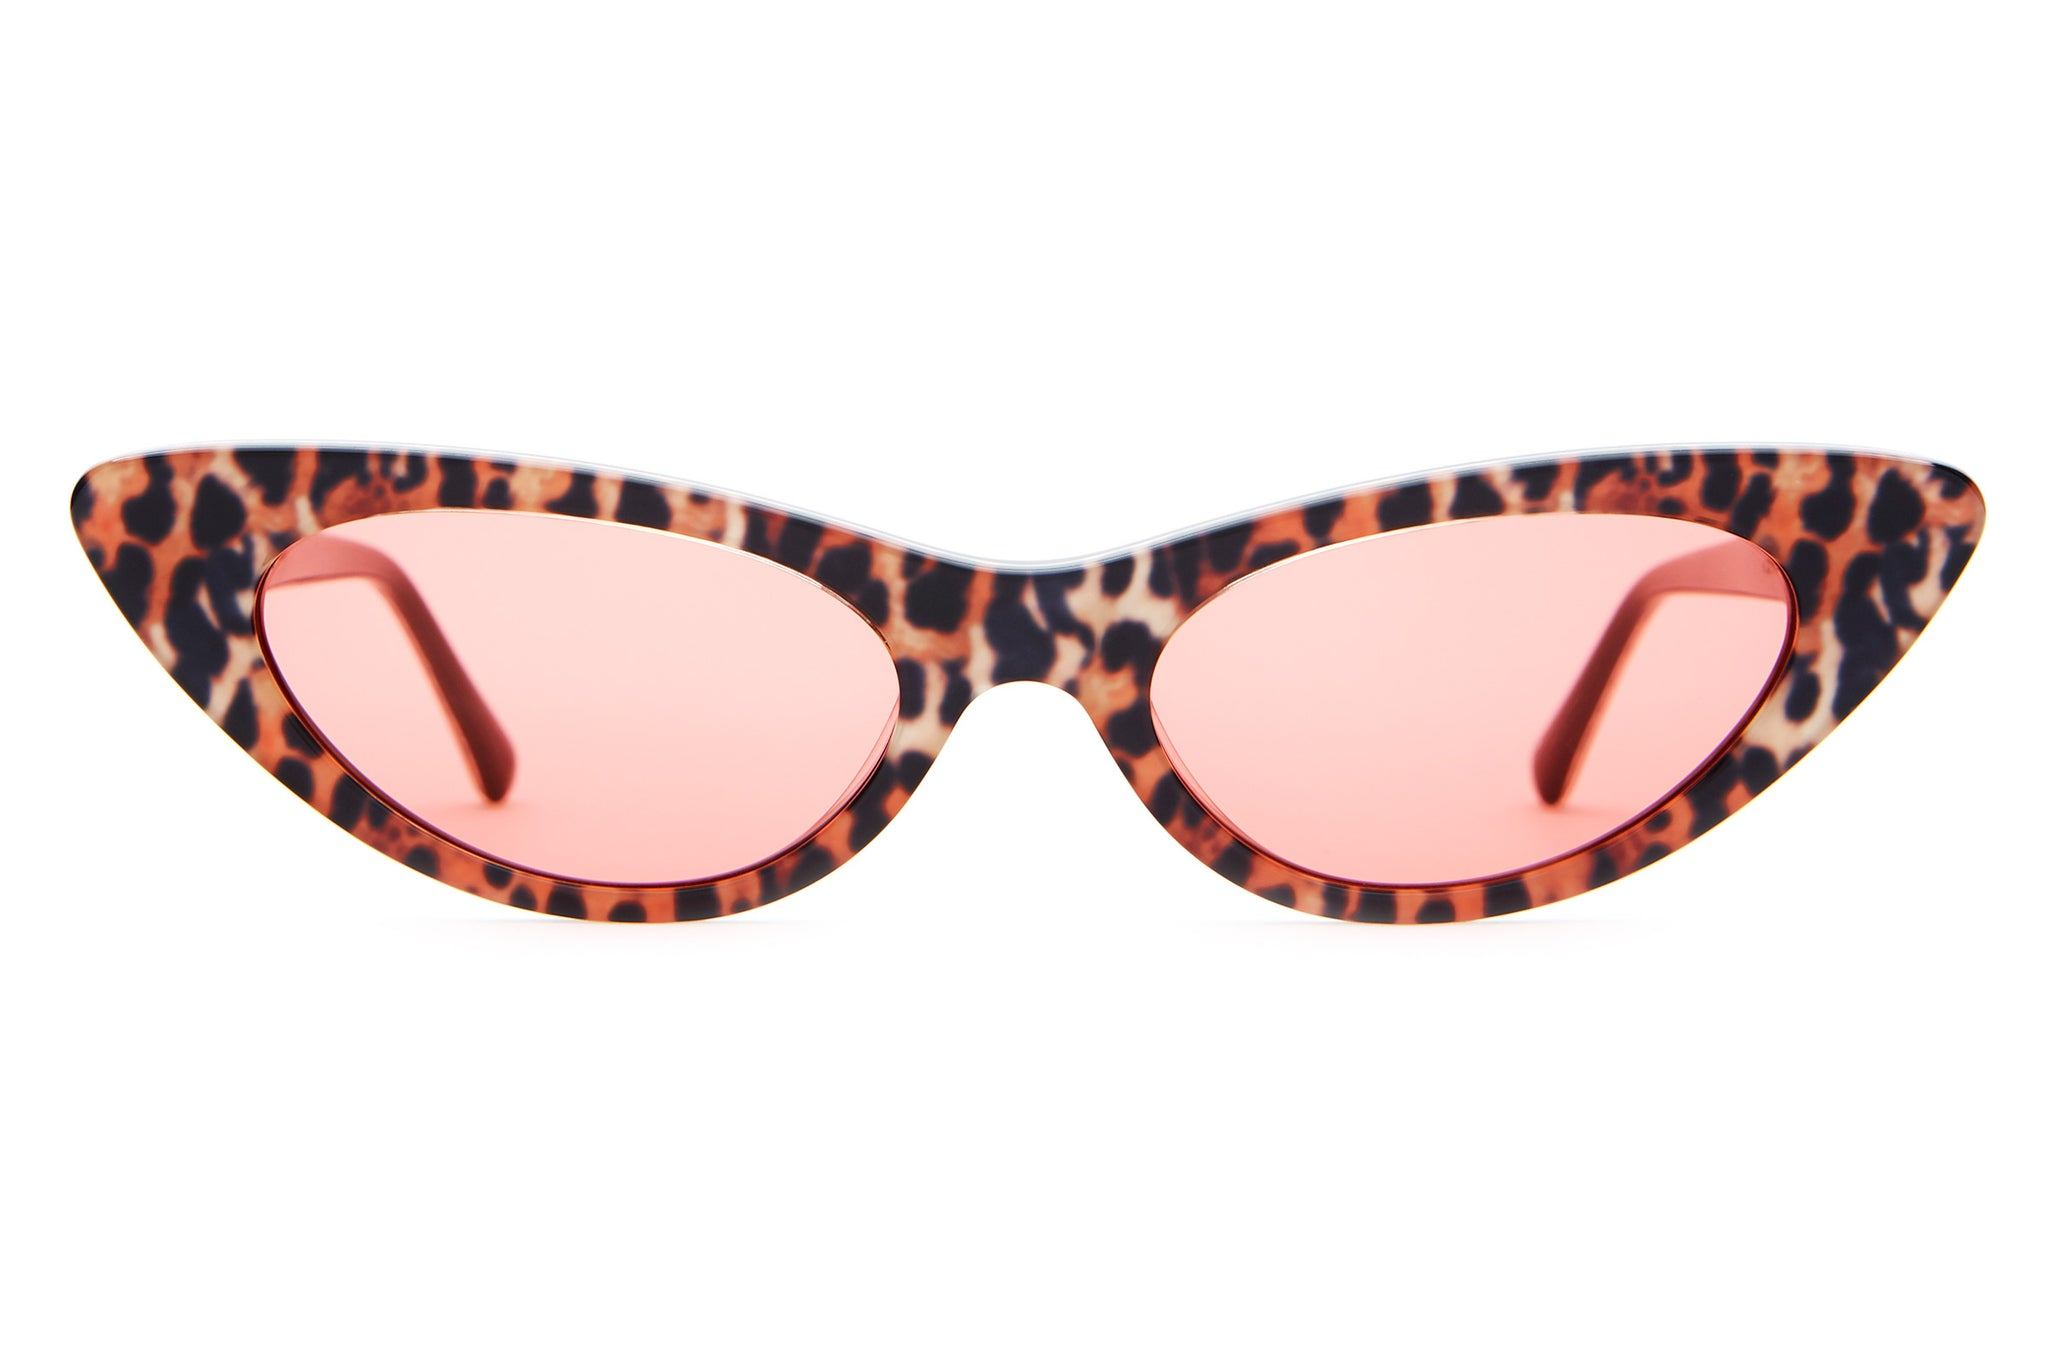 153b7ed390c The Ultra Jungle - Leopard -   Cherry Red - Sunglasses